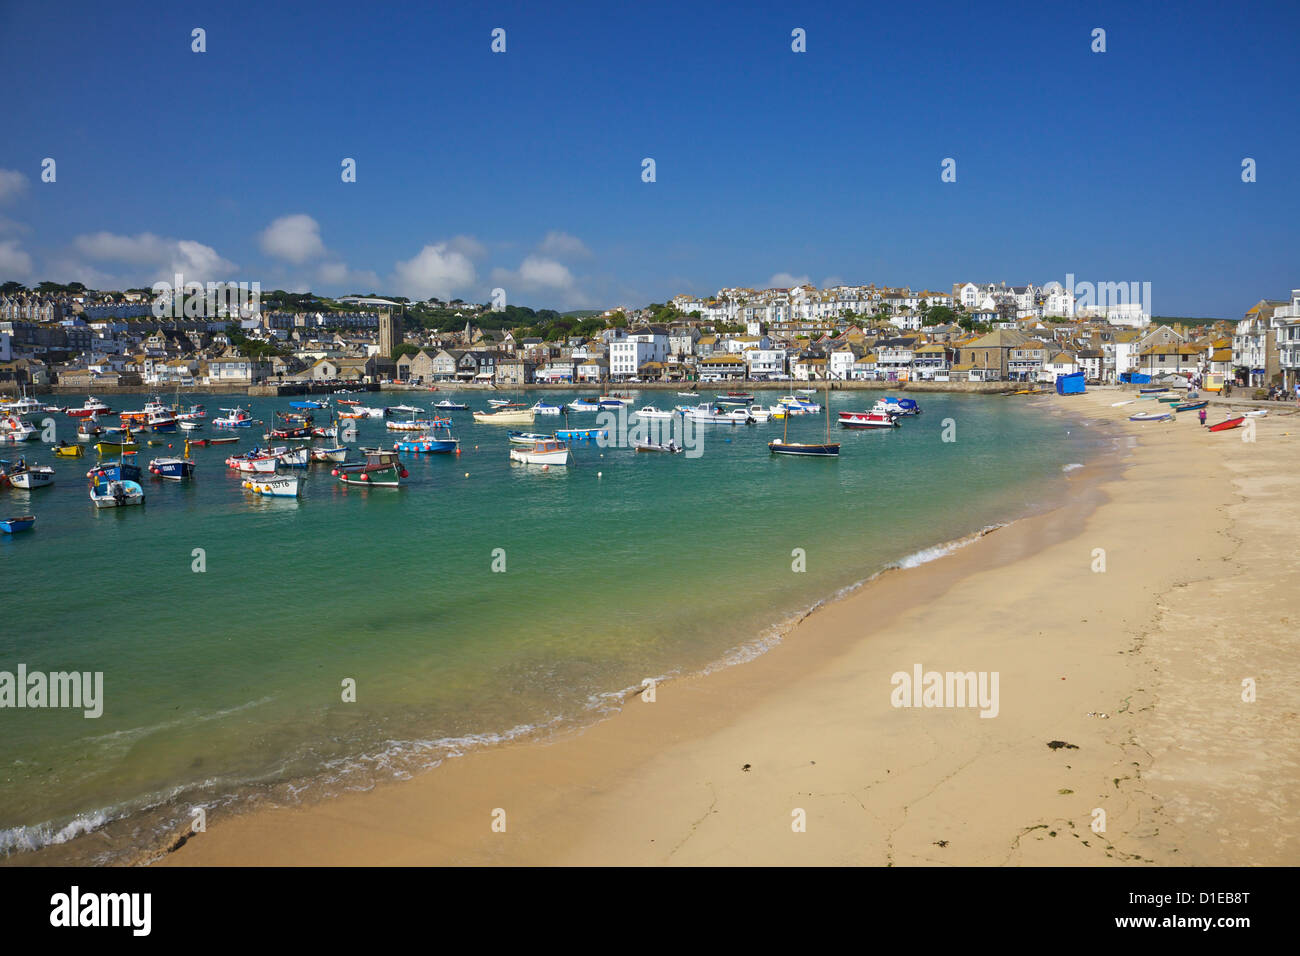 Summer sunshine on boats in the old harbour, St. Ives, Cornwall, England, United Kingdom, Europe Stock Photo